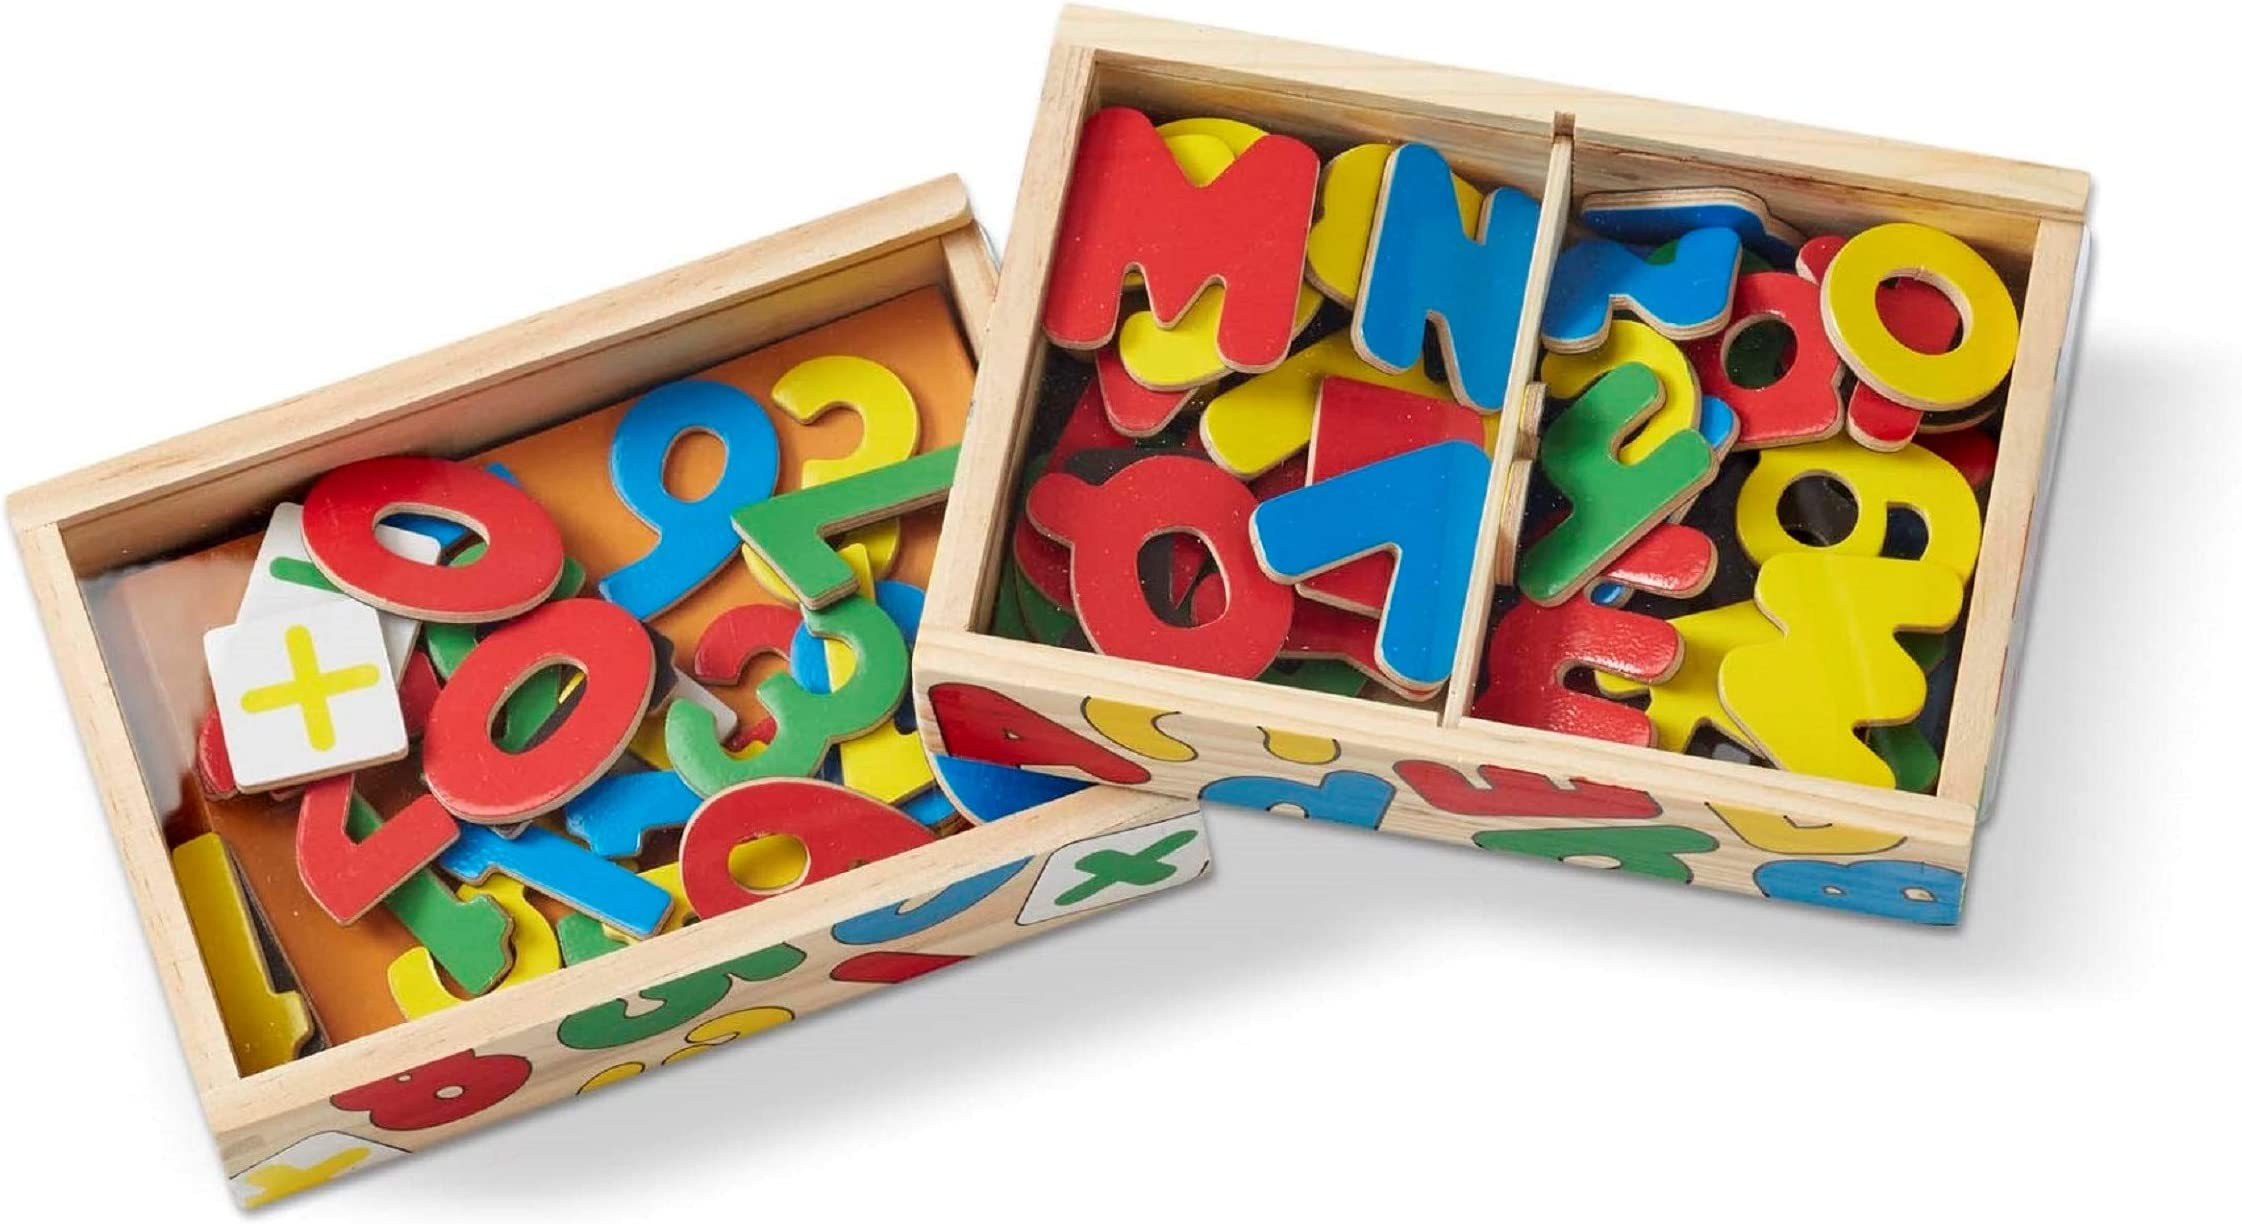 TONZE Magnetic Letters and Numbers Wooden Toys-Kids Toys Wooden Numbers Alphabet